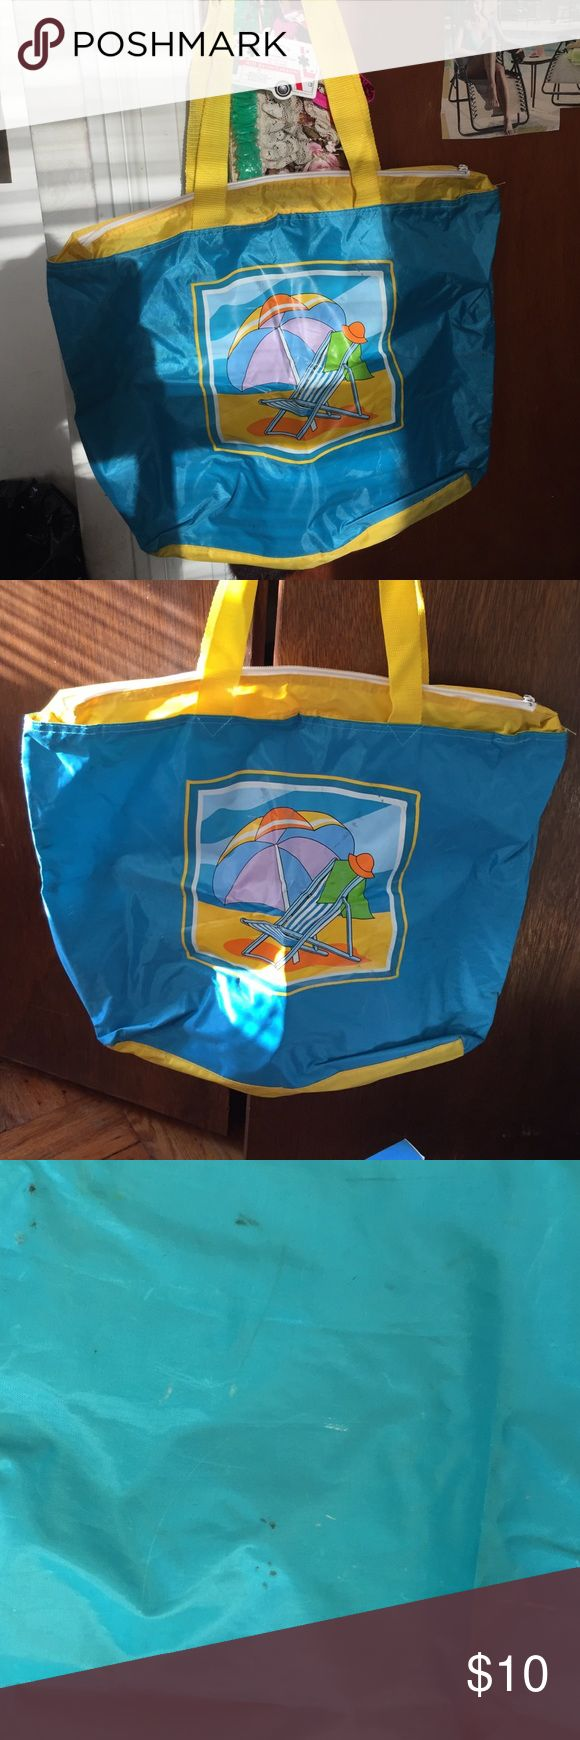 Beach bag.- cruise 🚢 Adorable beach bag w / a print w cute print w a beach chair / umbrella / towel / hat - fun - fun - so roomy good enough to fit everything in there - tons of room -used - see pics - some spots on bag due to wear.🌞☀️👙👙👣👣👒👒👡👡🕶🕶🏊🏄🚣🚣🎣🏖🏝🏖🏖🏖🏝🏝🏝🏝🏖🏖🏖🏖🏜🏜🏜🎏 Bags Totes